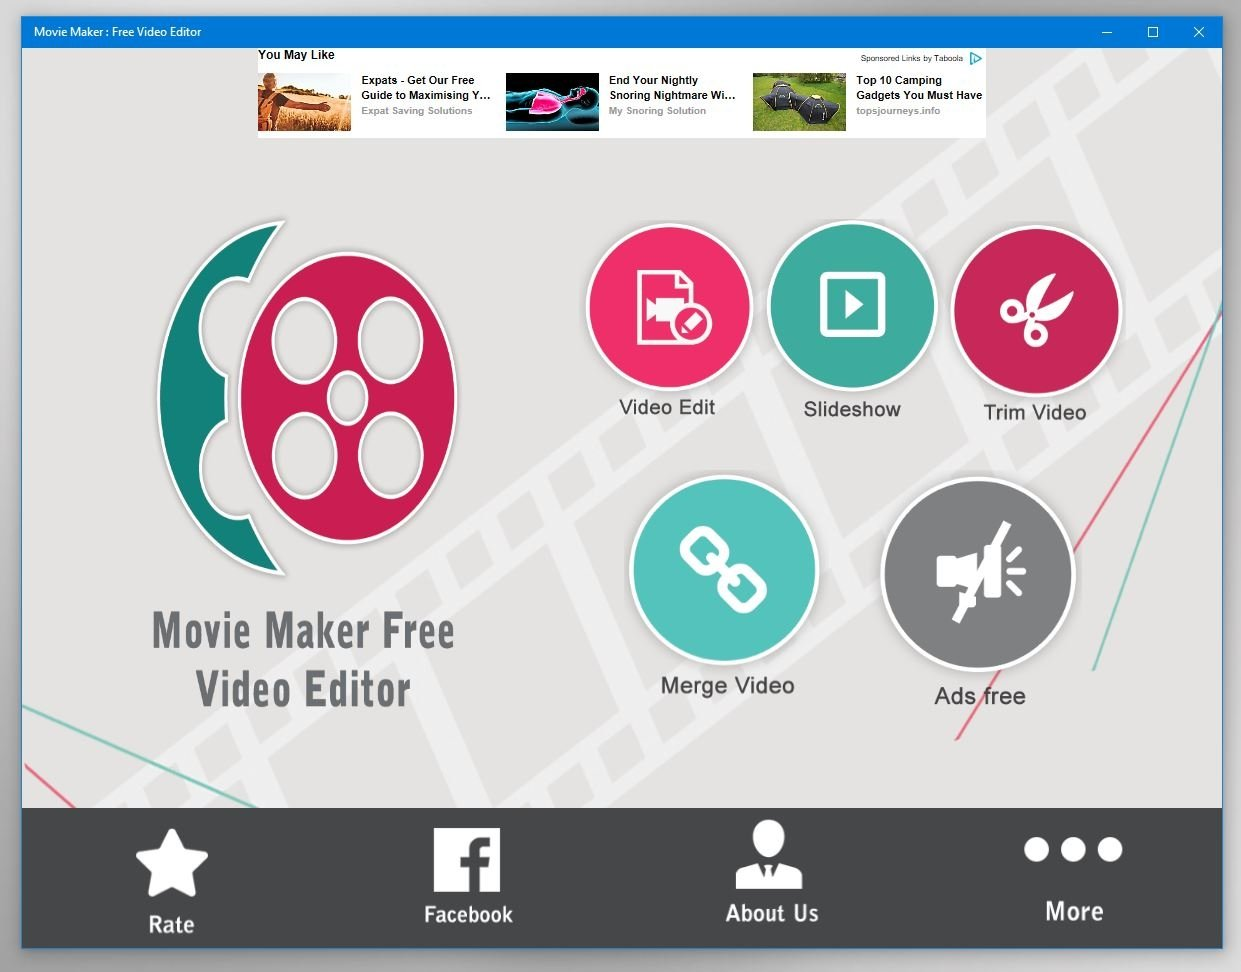 Movie Maker - Free Video Editor 1 1 30 0 - Download for PC